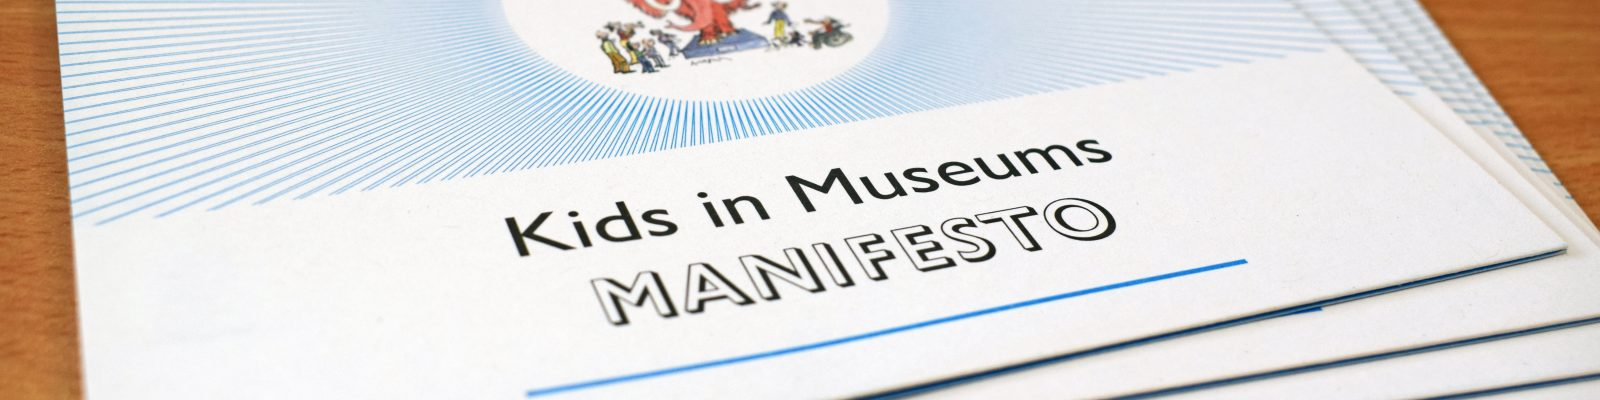 Pile of postcard sized Kids in Museums Manifesto images